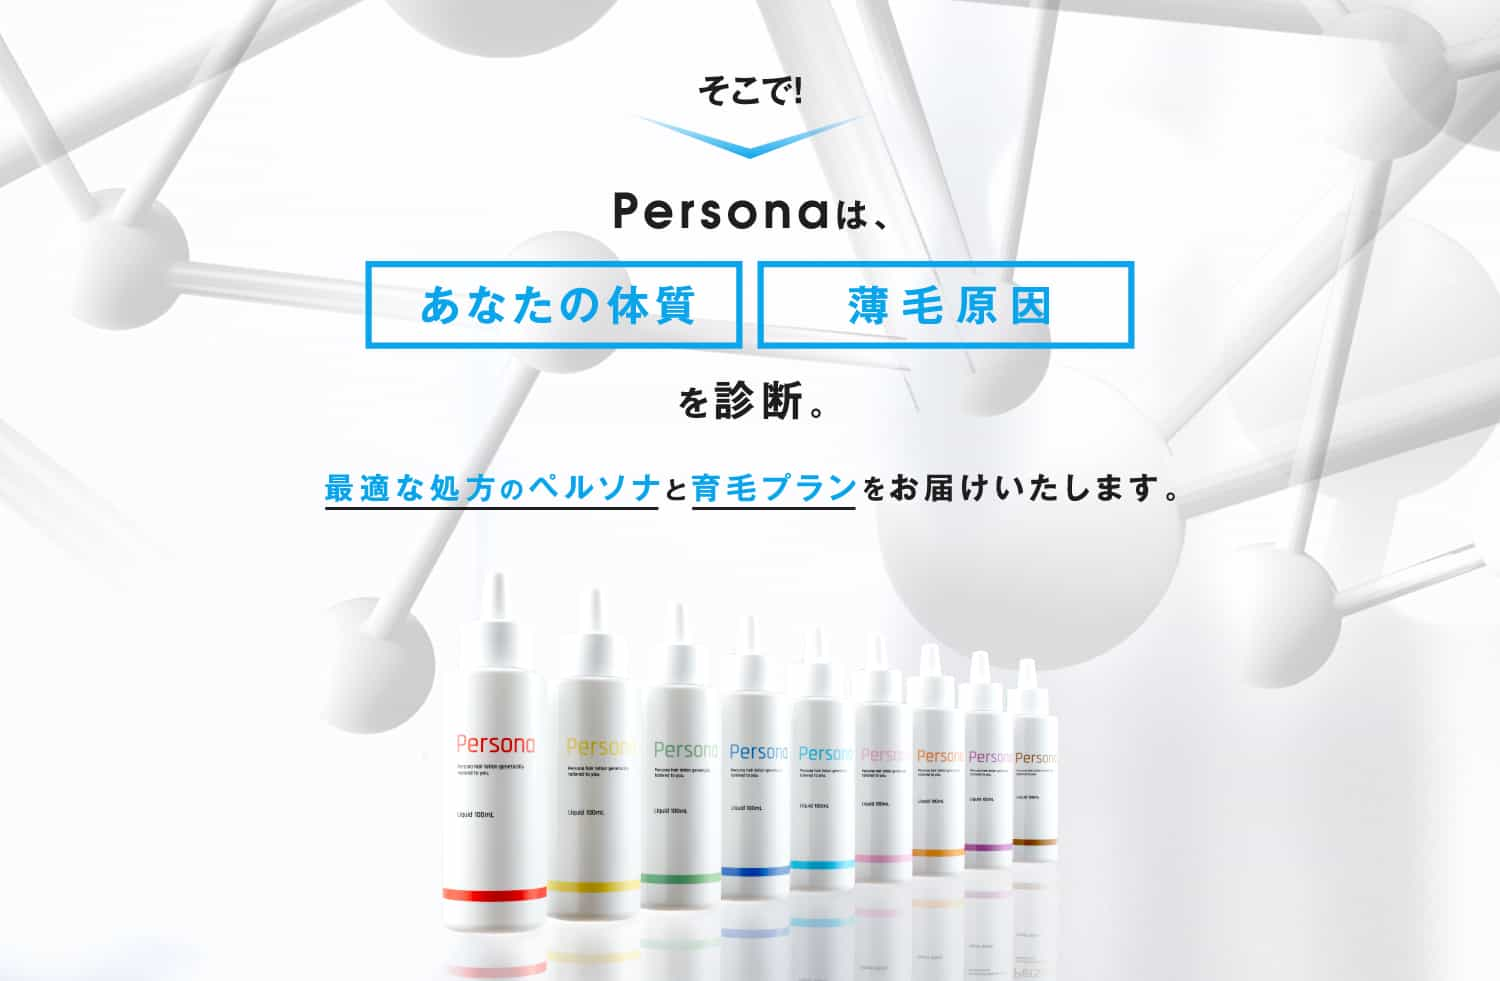 Personaは、あなたの体質+薄毛原因を診断。